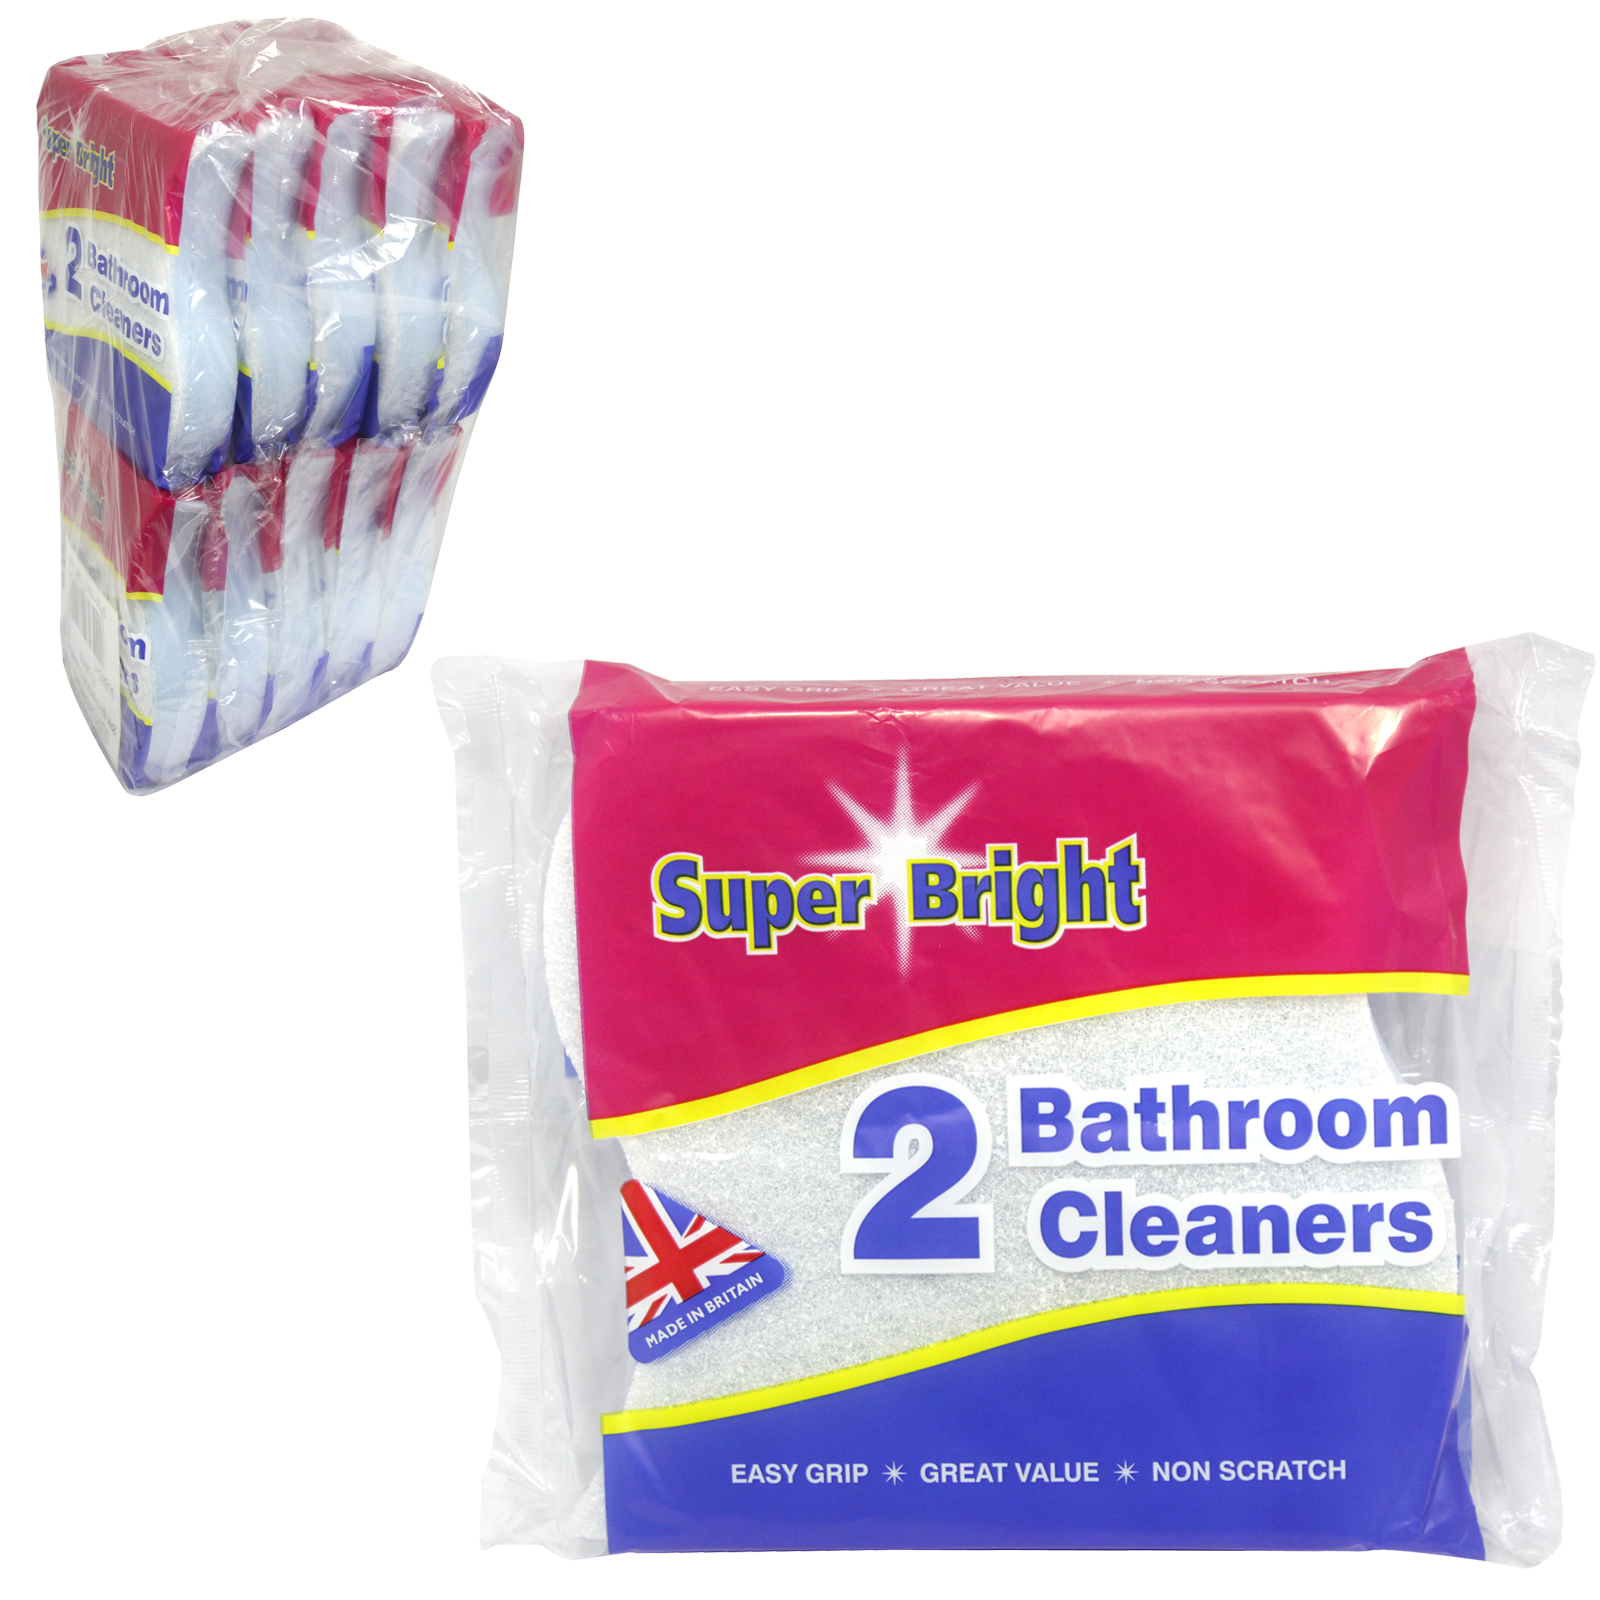 SUPERBRIGHT 2 BATHROOM CLEANERS NON-SCRATCH X10